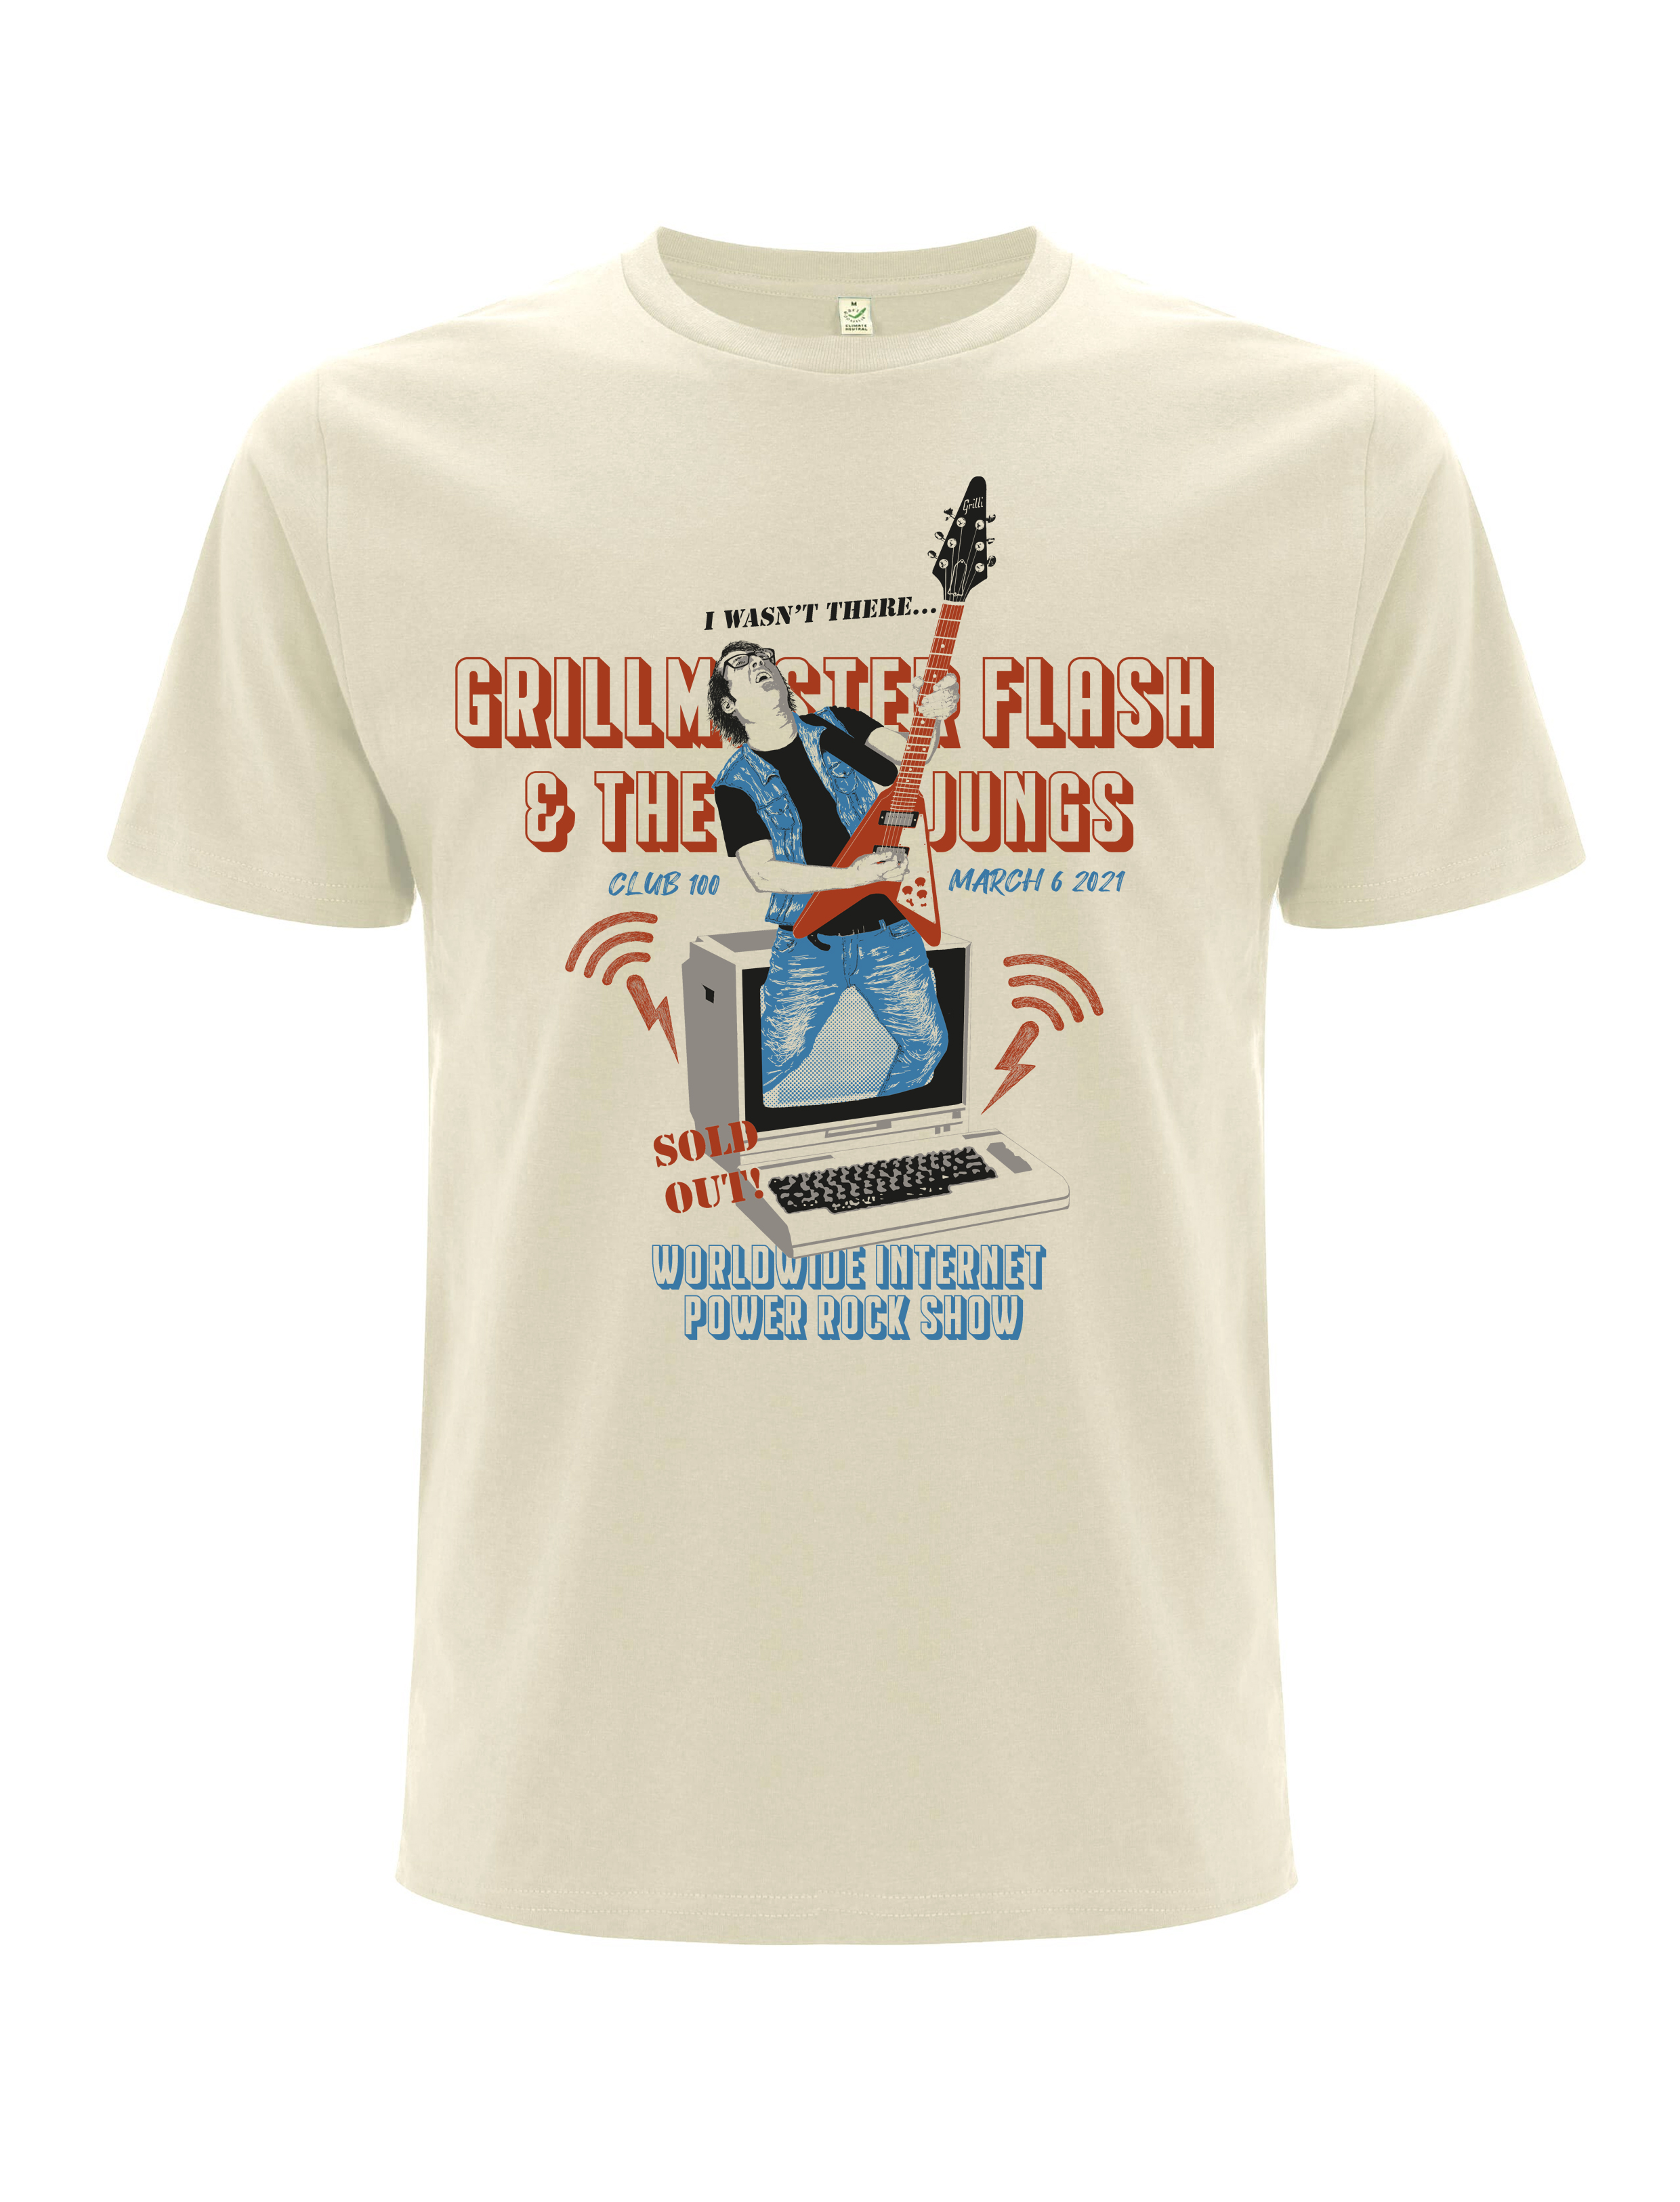 Grillmaster Flash - I wasn't there - Shirt